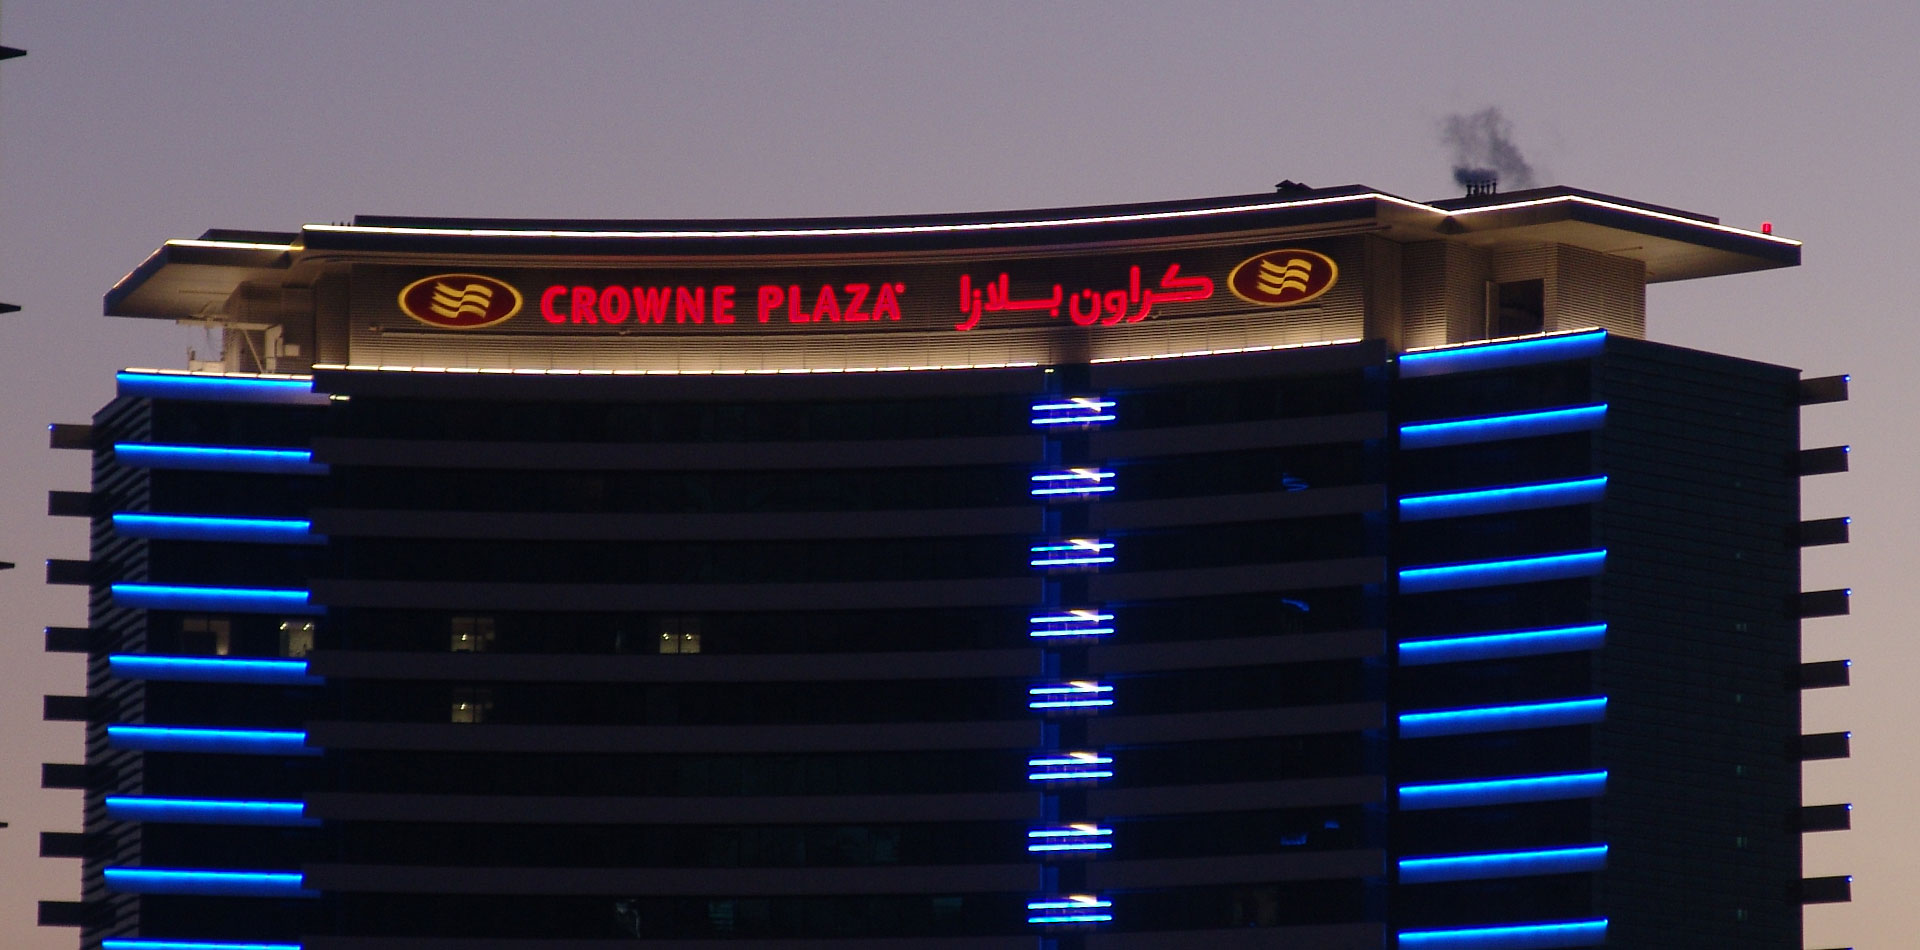 Neon Signage of Crowne Plaza